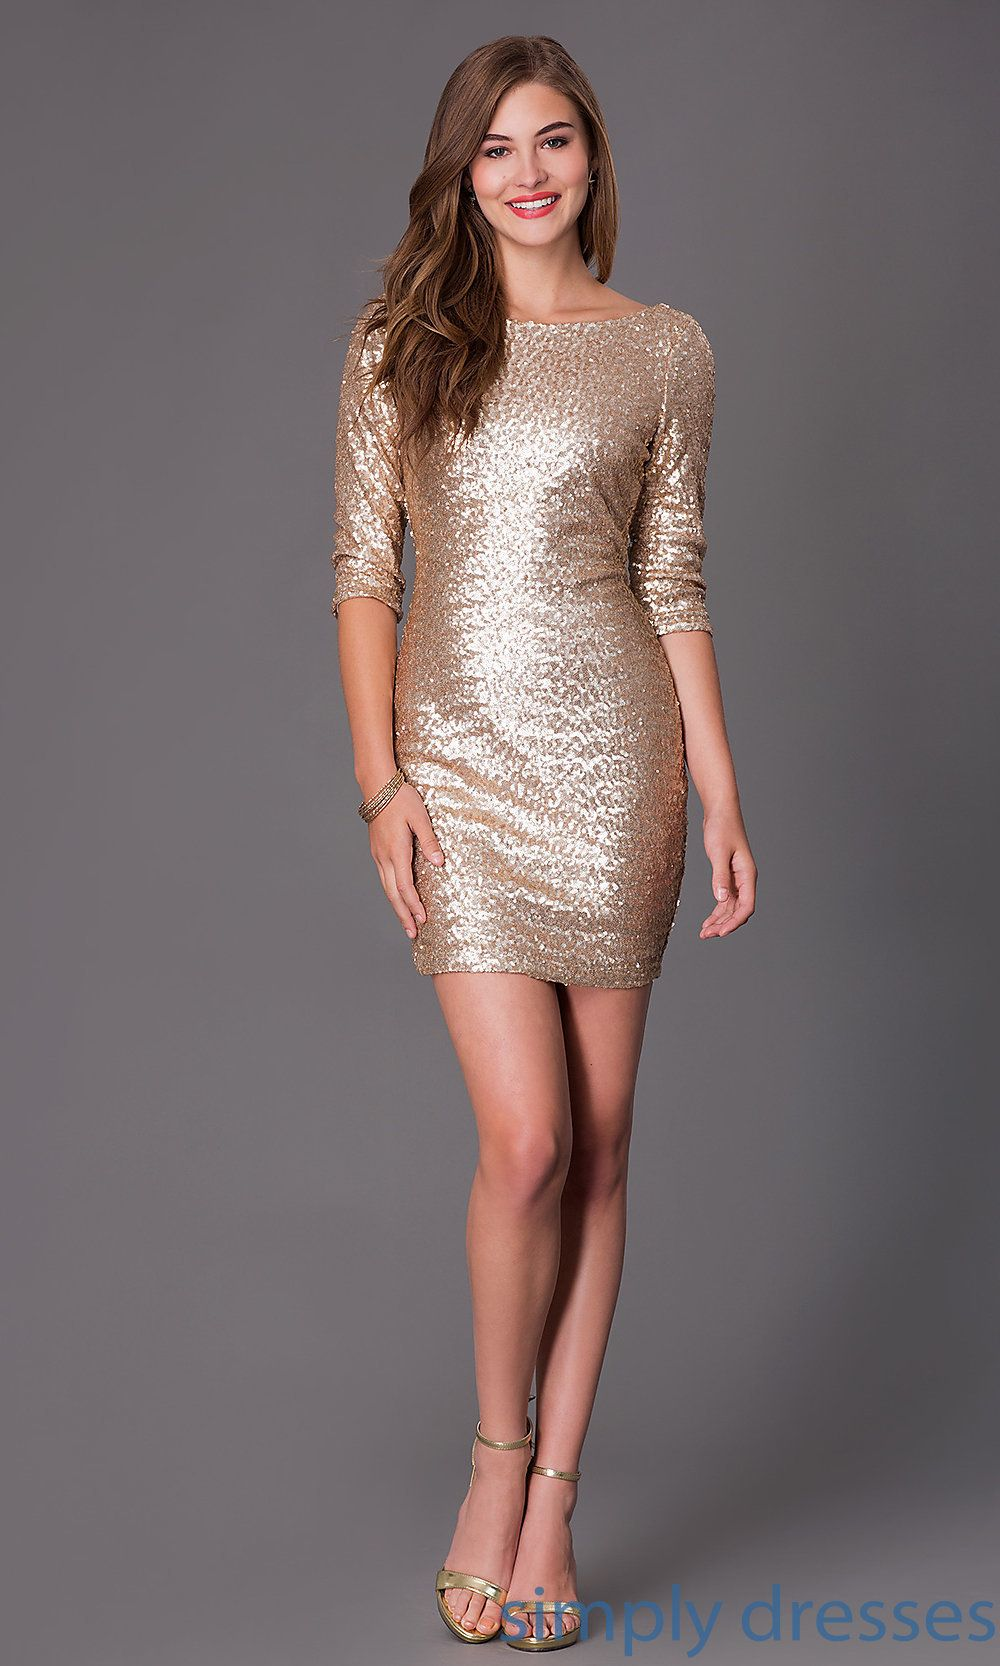 Short Gold Sequin Dress With Half Sleeves Simplydresses